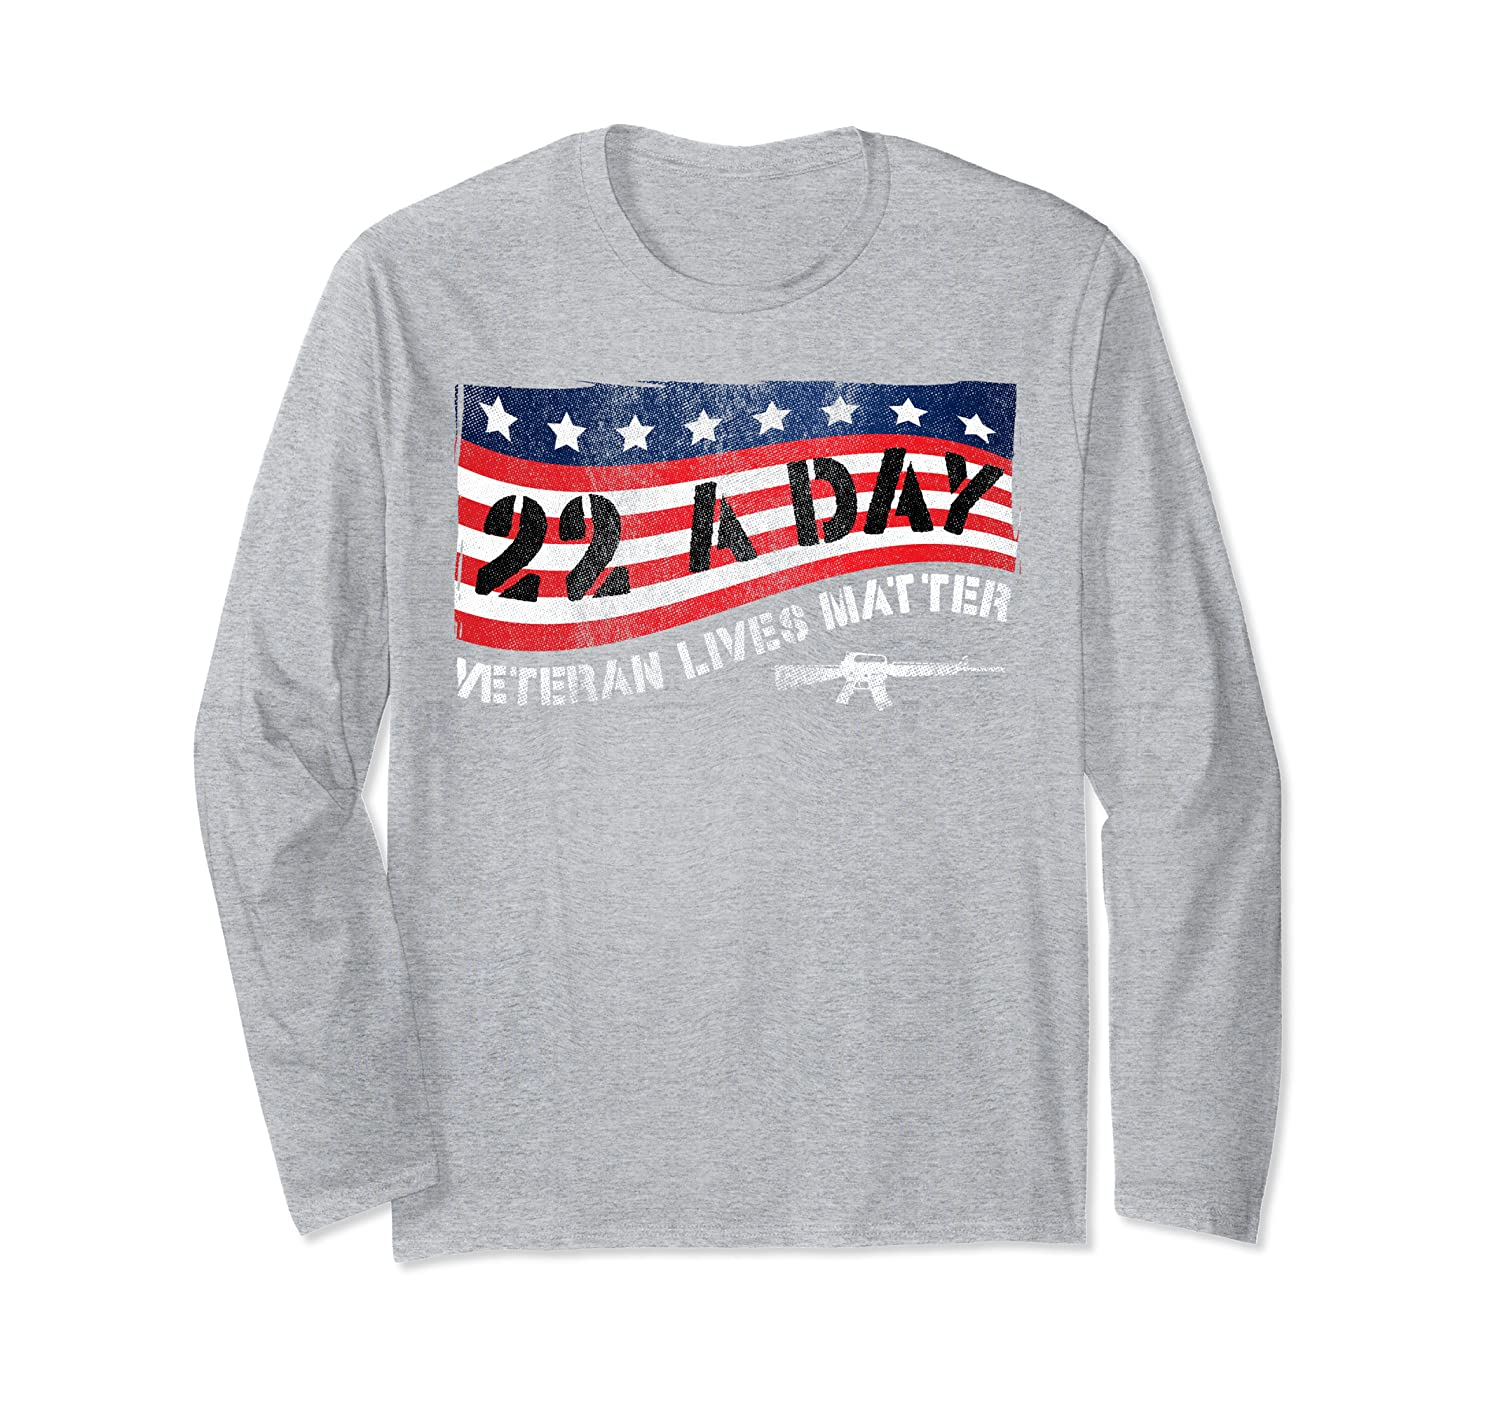 22 A Day Veteran Lives Matter US Flag Tee Veteran's Day   Long Sleeve T-Shirt